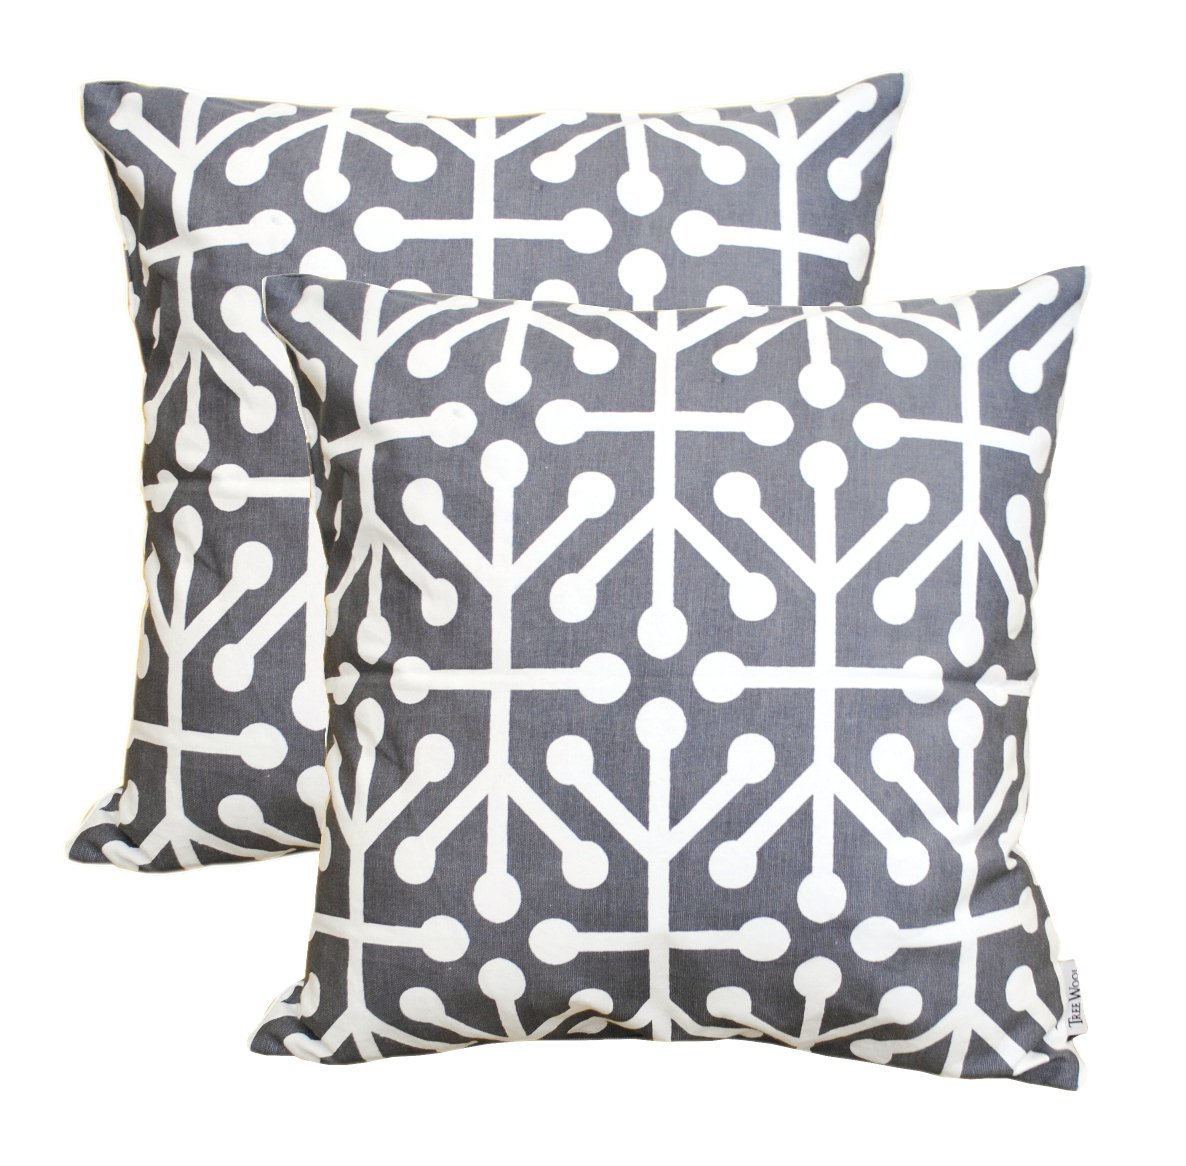 TreeWool, Cotton Canvas Octaline Accent Decorative Throw Pillowcases (Pack of...